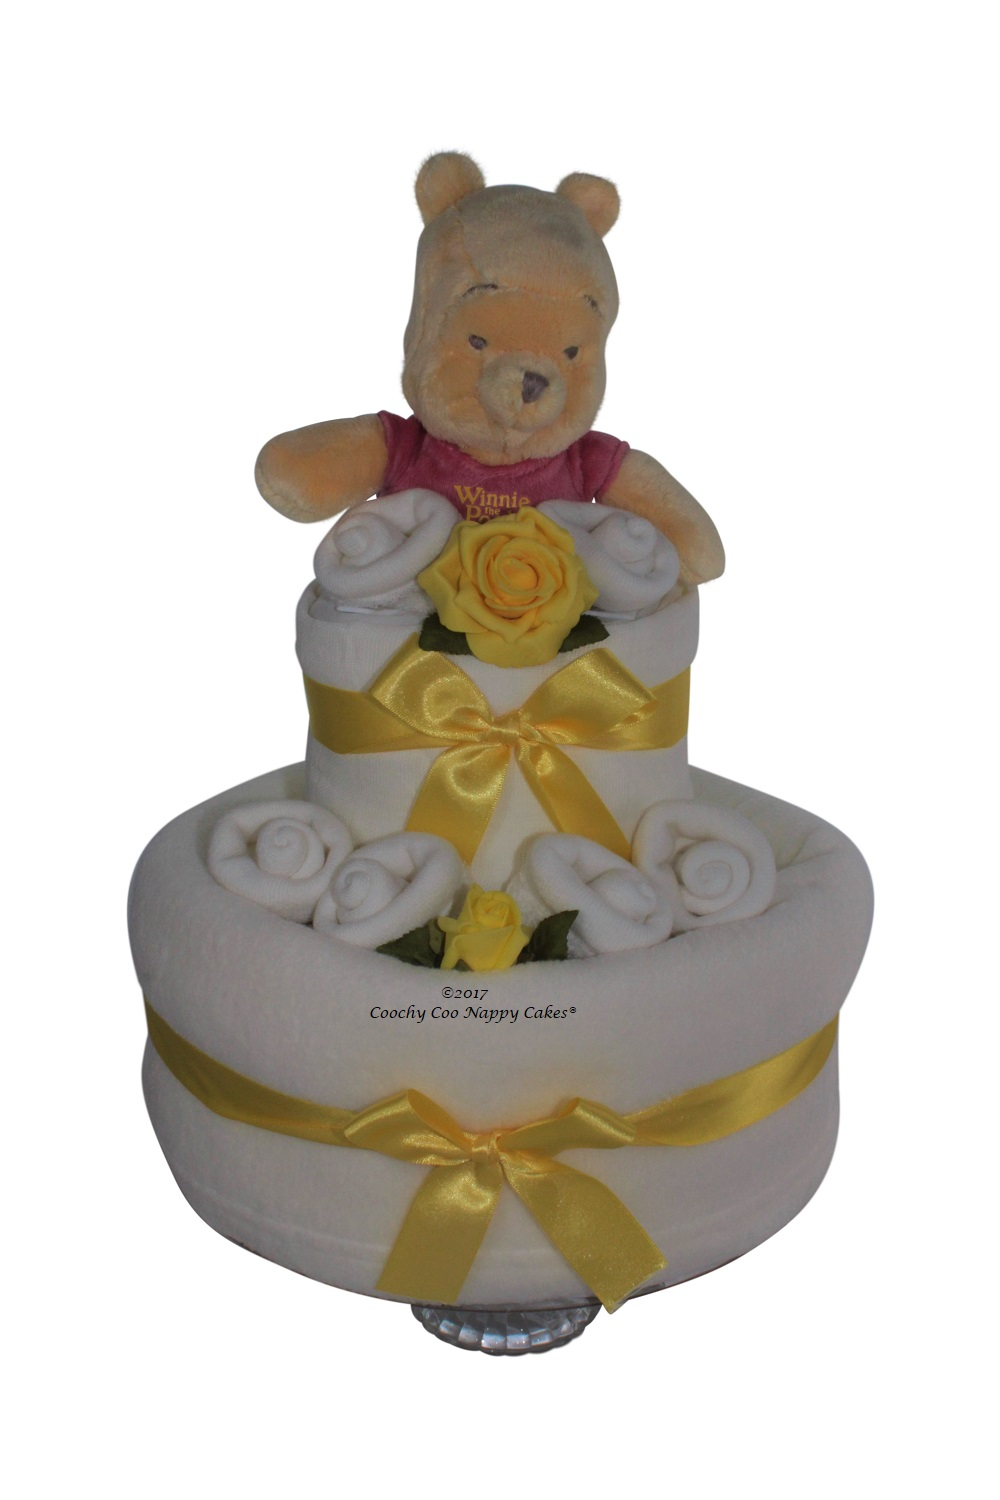 Unisex baby shower nappy cake hamper gift coochy coo nappy cakes winnie the pooh nappy cake negle Images